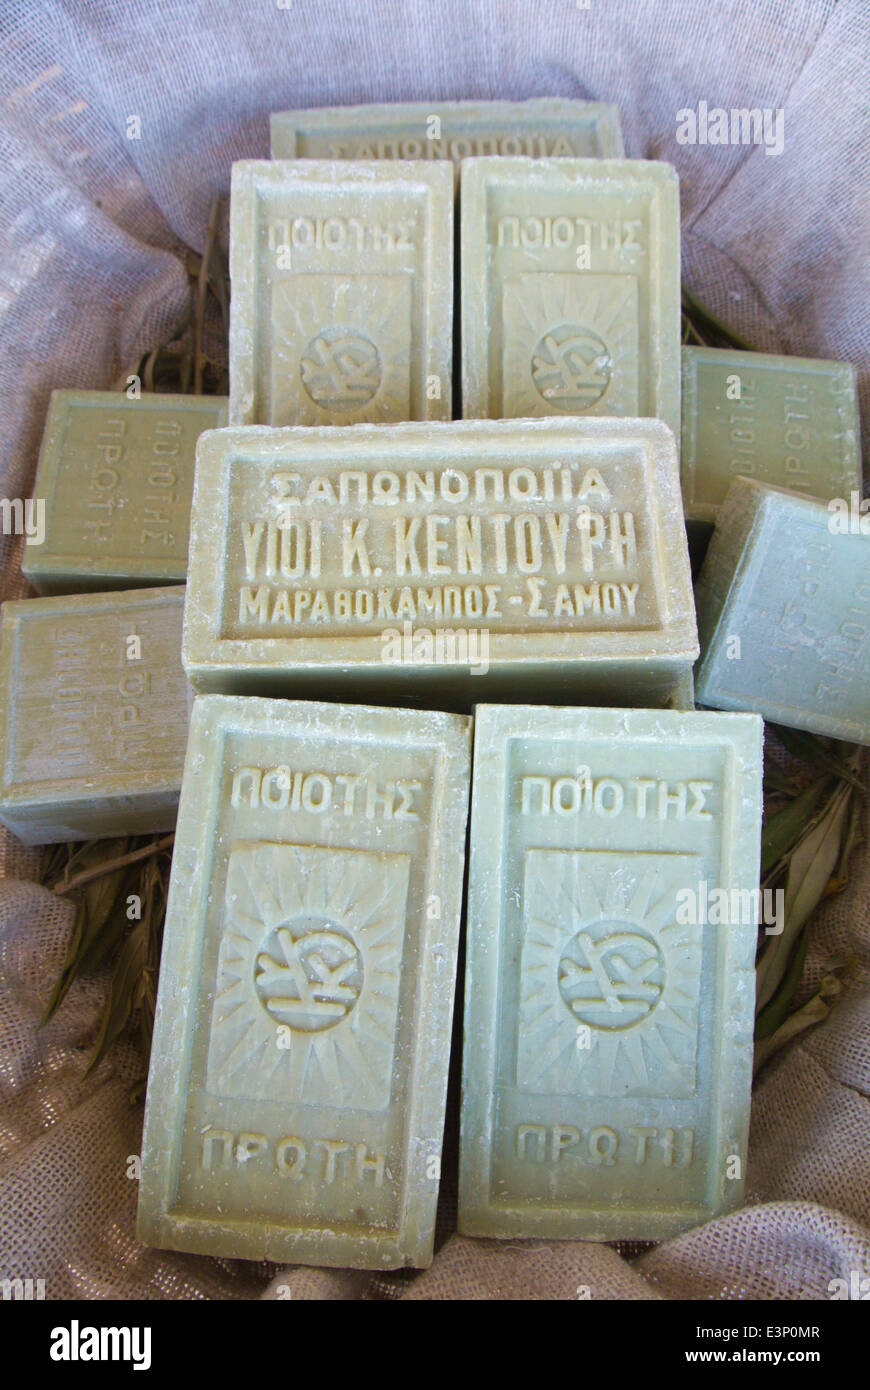 Olive oil soap bars, souvenir shop, Pythagoreio, Samos, Aegean Sea, Greece, Europe - Stock Image